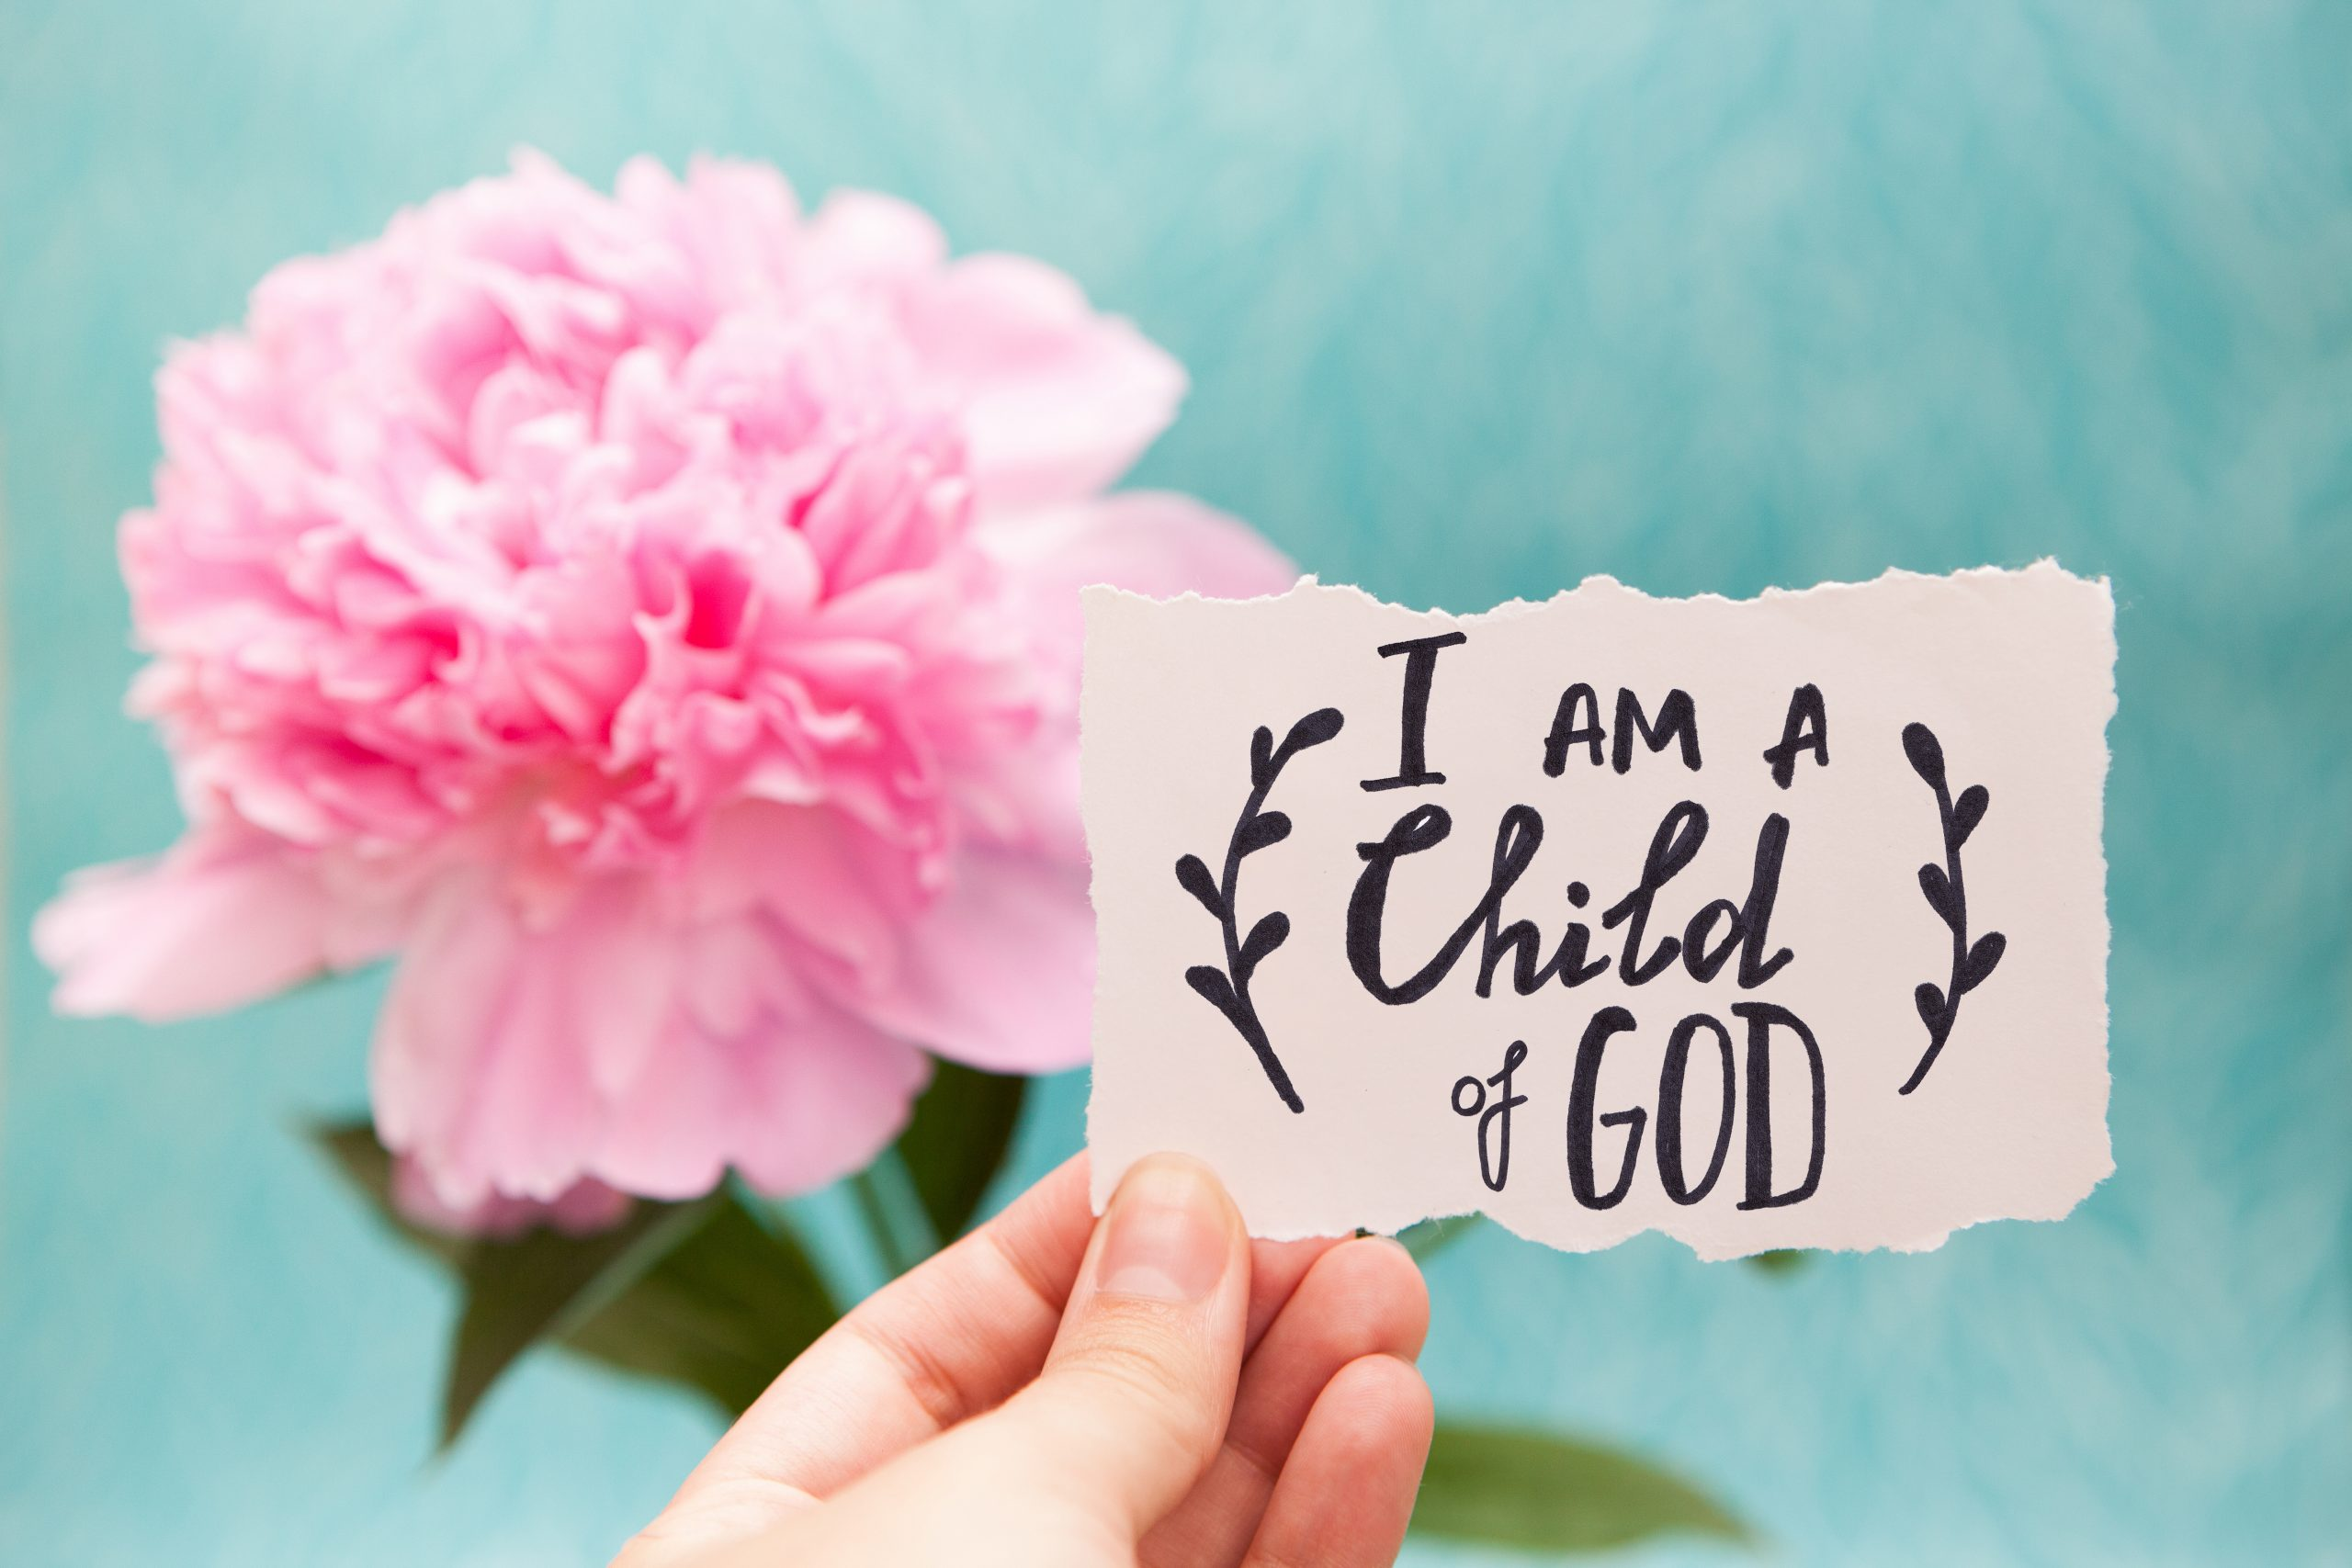 """Gina Rolkowski shares her personal story of how building a personal realtionship with God and fostering self-compassion helped her healing shame from childhood abuse. The image displayed shows a bright pink flower in full bloom with a woman's hand holding a note that reads, 'I am a child of God."""""""